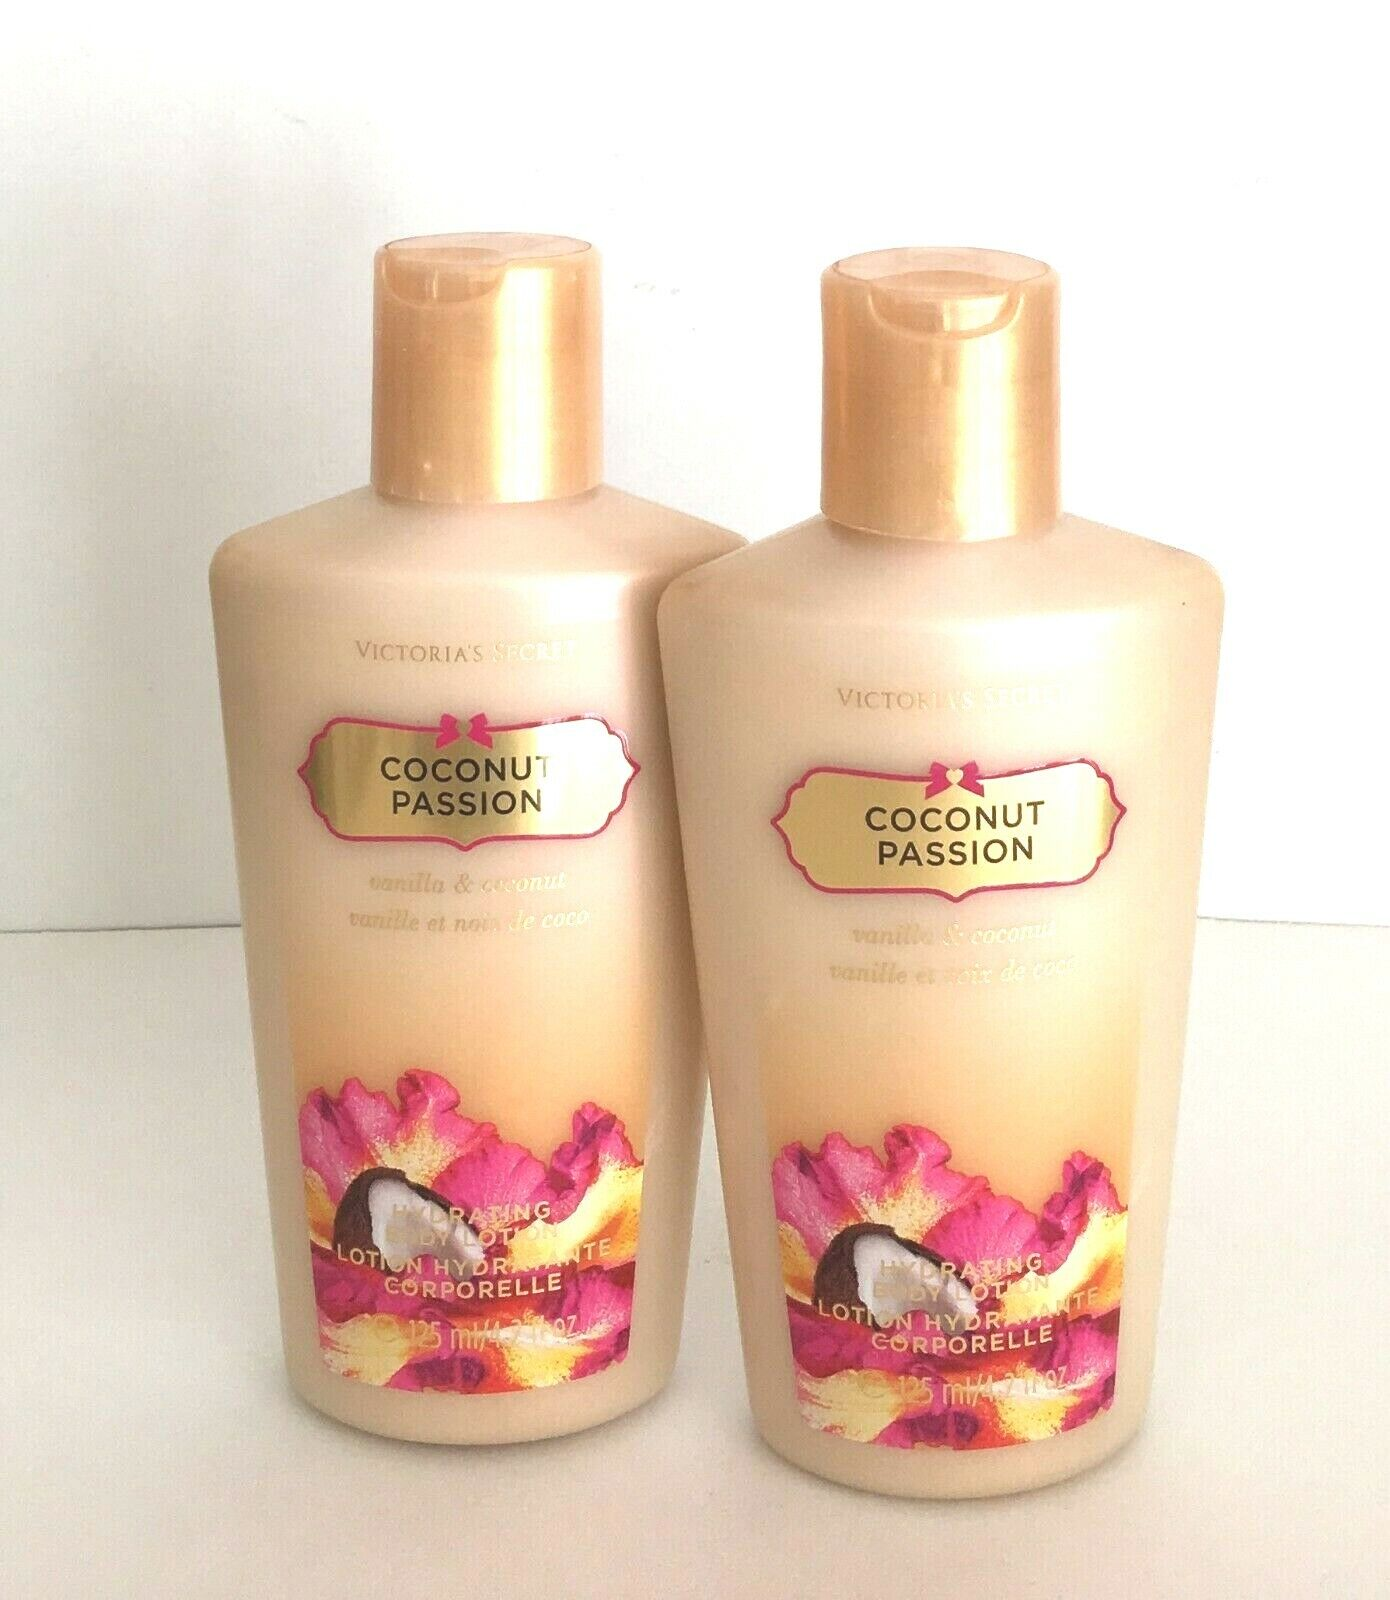 2x Victoria's Secret Coconut Passion Hydrating Body Lotion 4